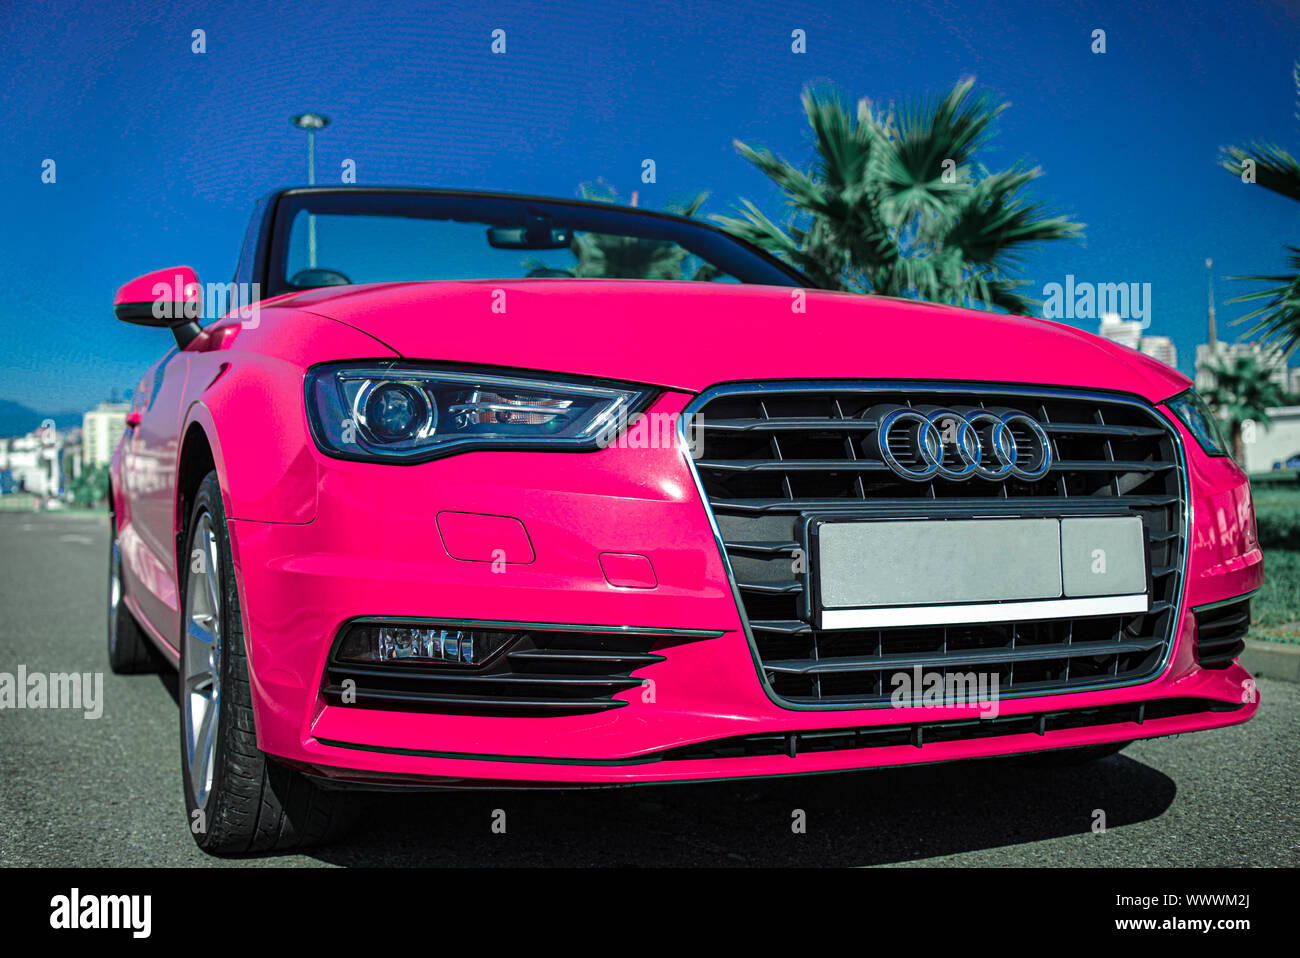 Russia Sochi August 2019 Pink Audi Convertible Near Palm Trees In The Parking Lot Summer Travel Stock Photo Alamy